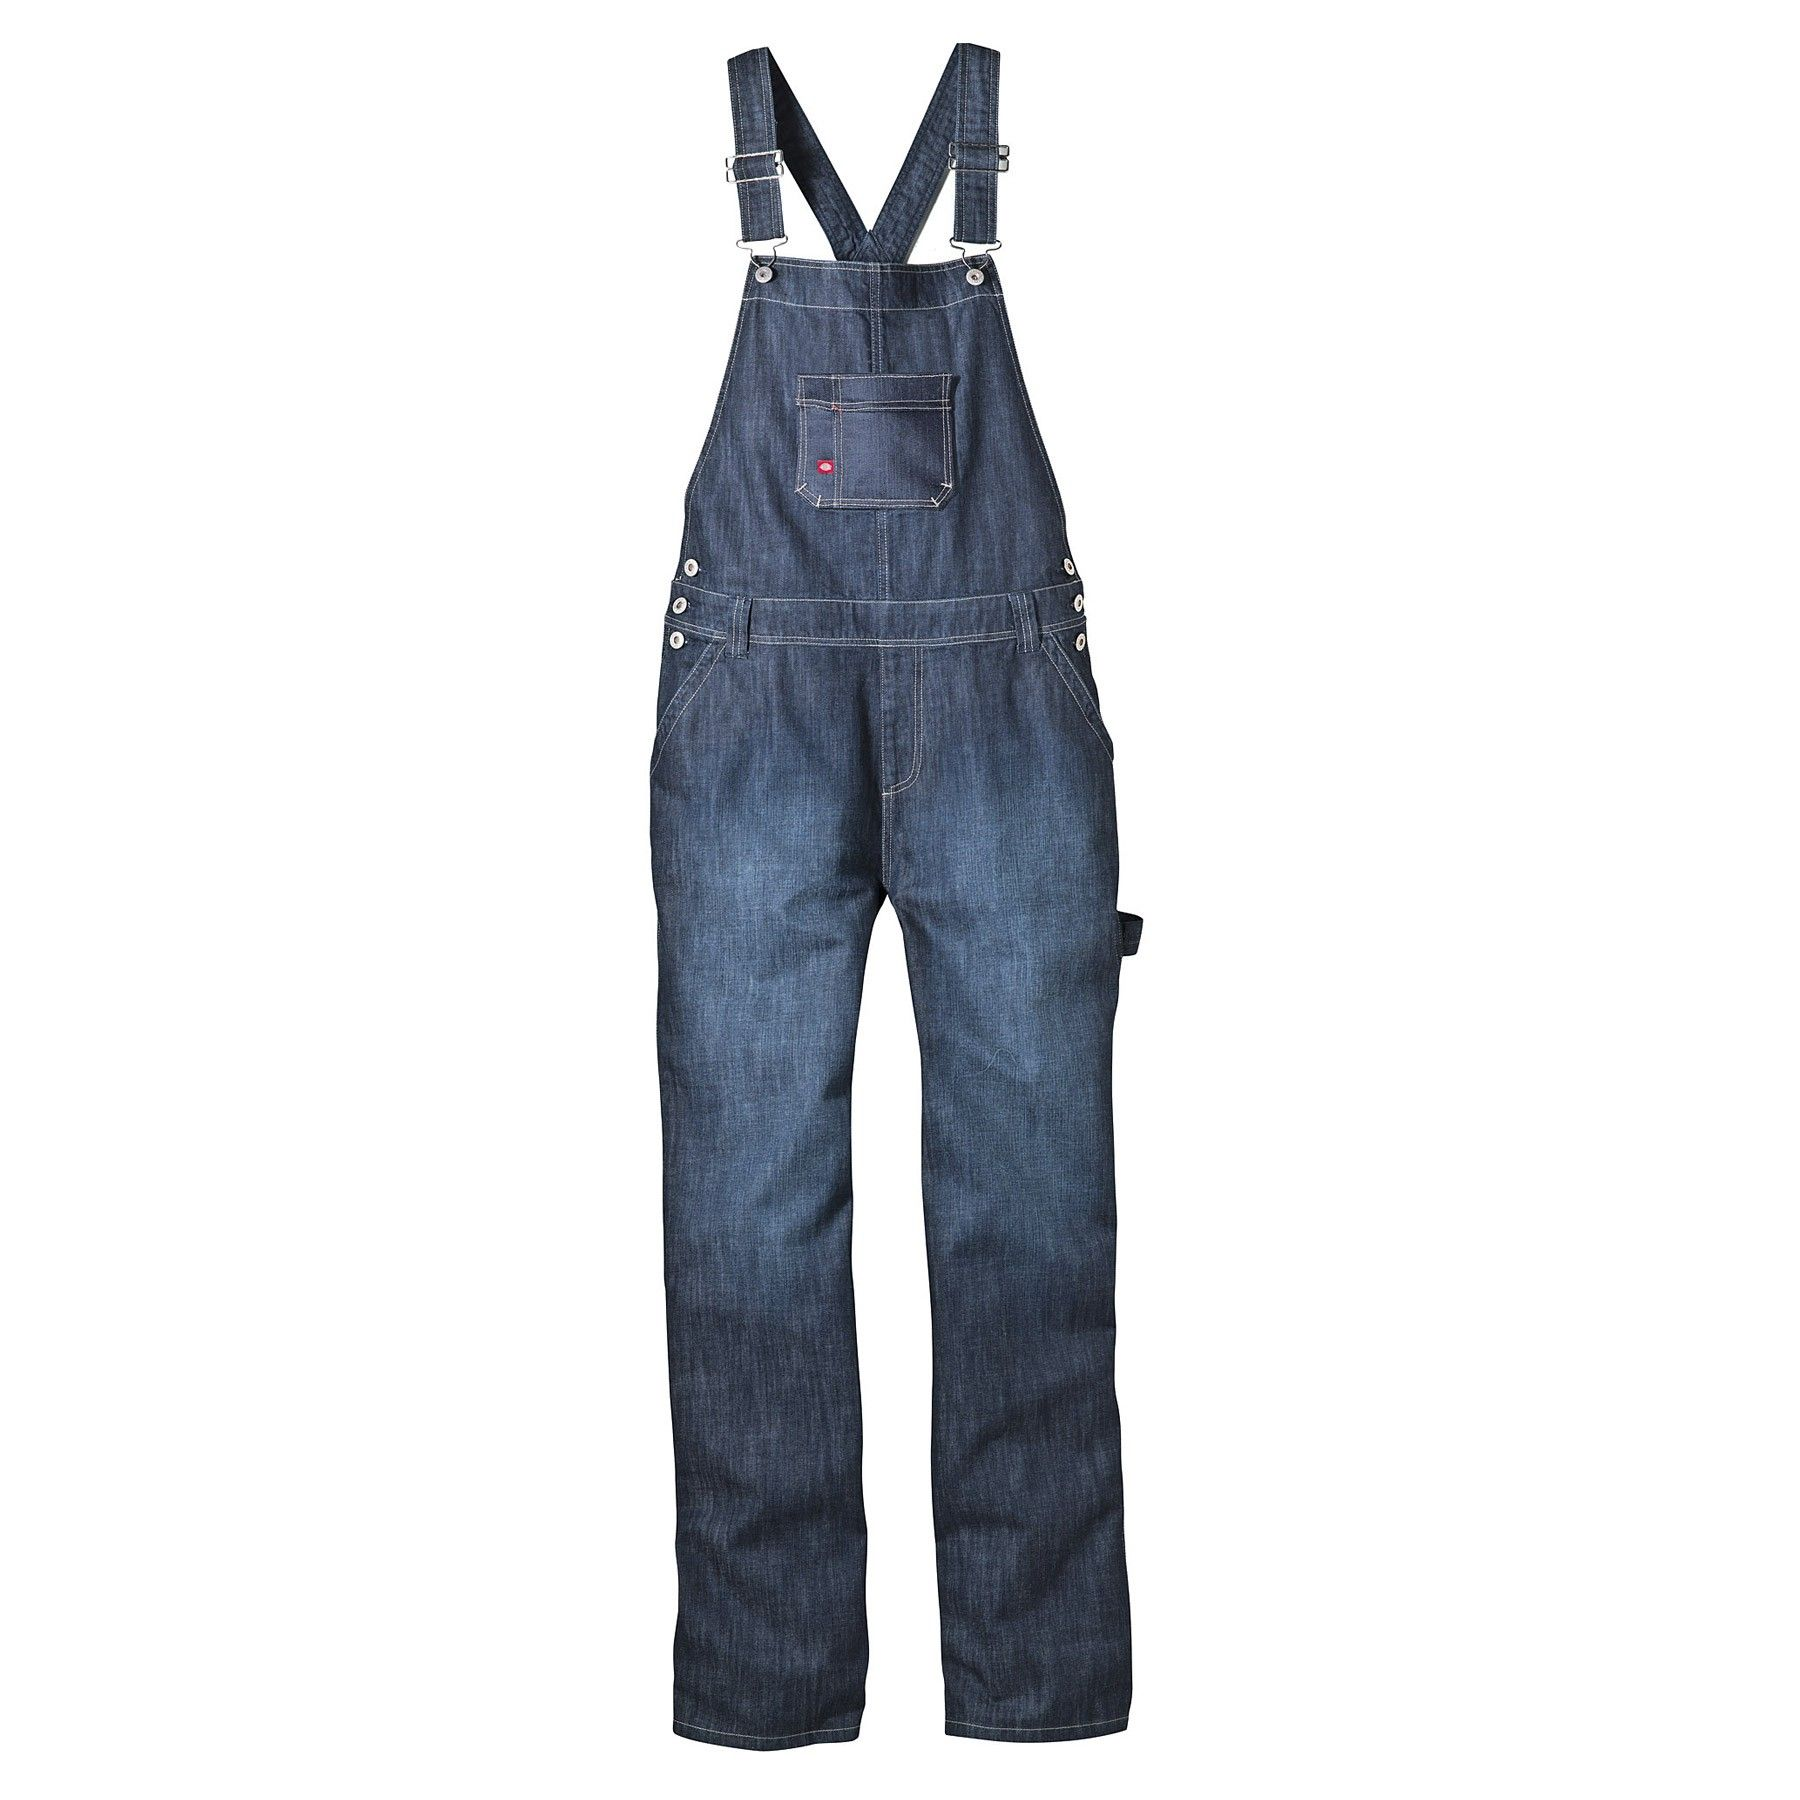 dickies women s relaxed fit bib overalls fb206 on dickies coveralls id=60074